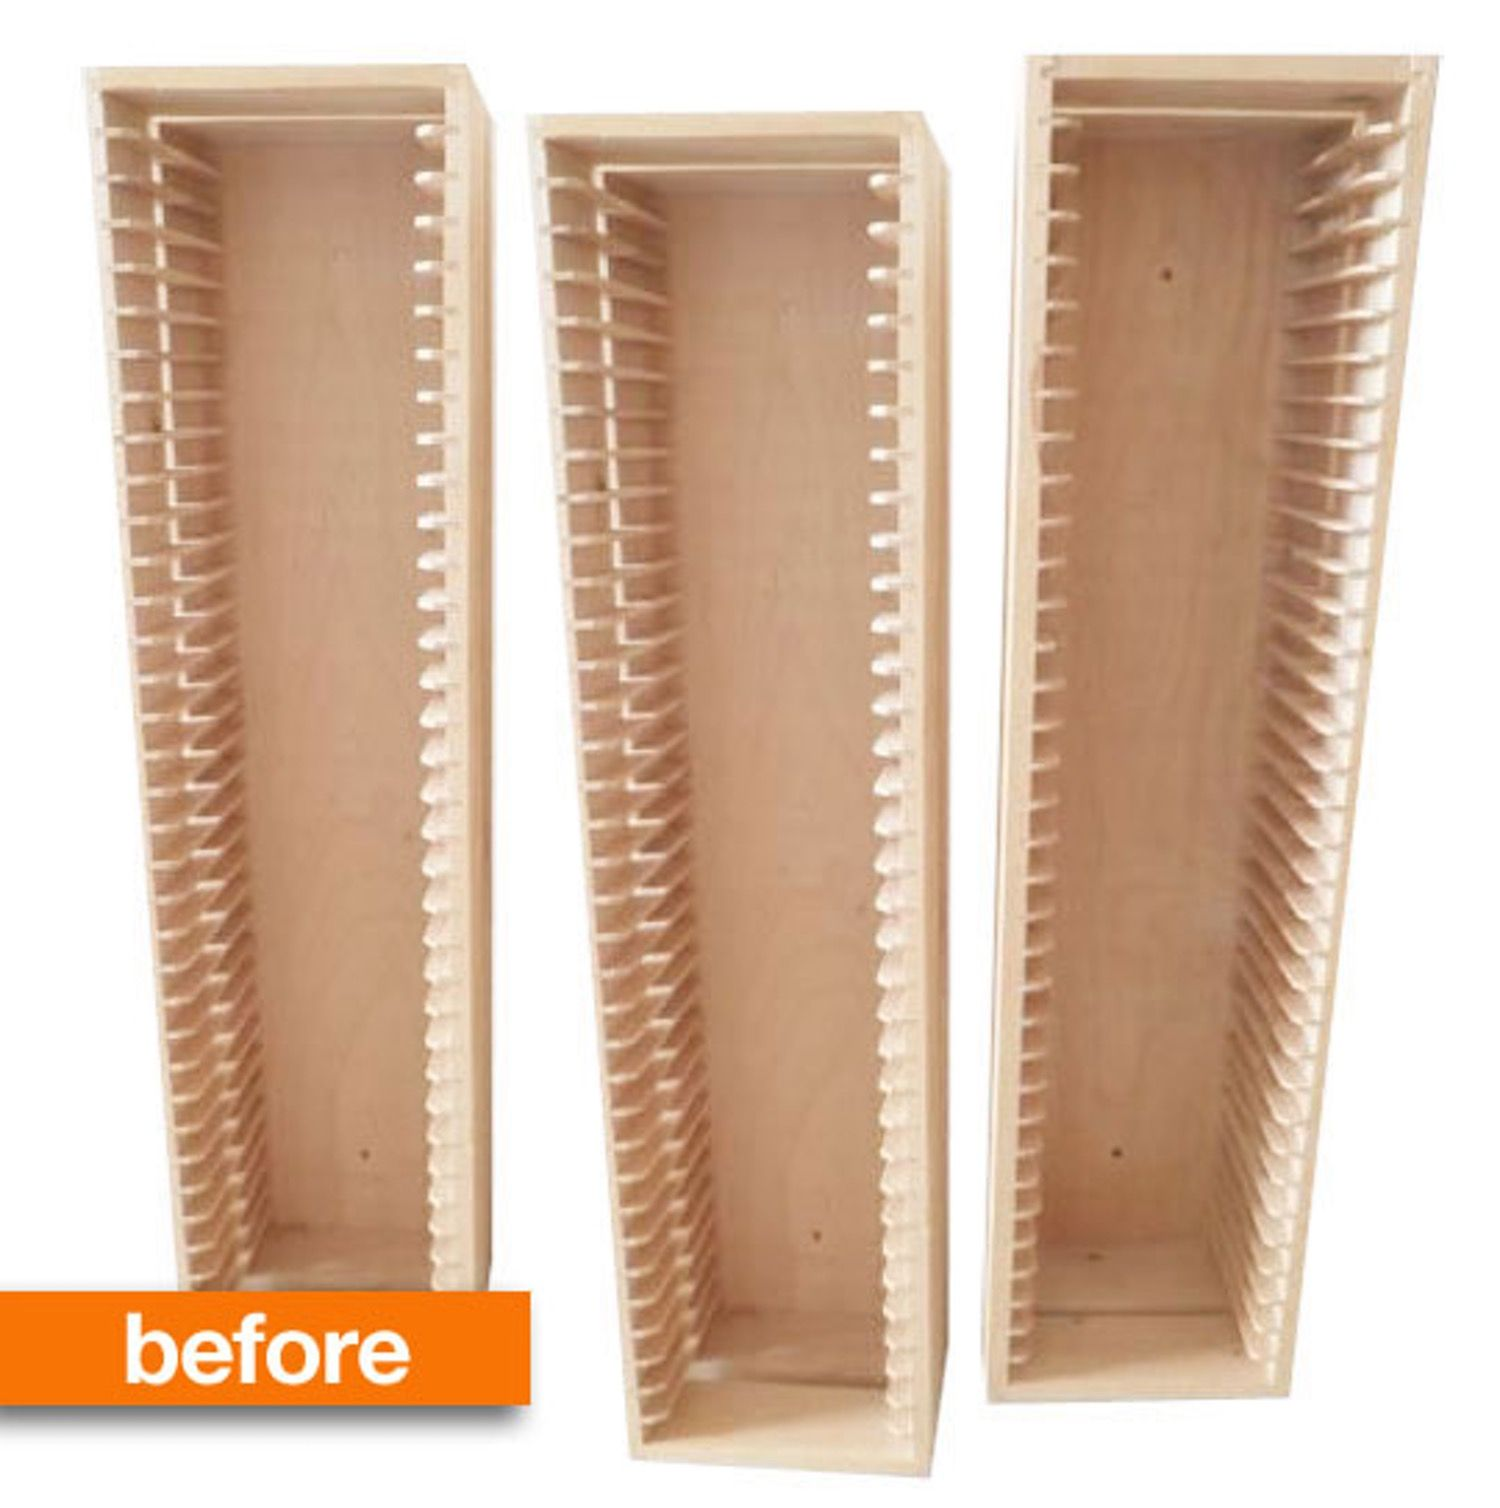 Before & After: IKEA CD Storage Racks Turned Into Gadget Display — IKEAHackers